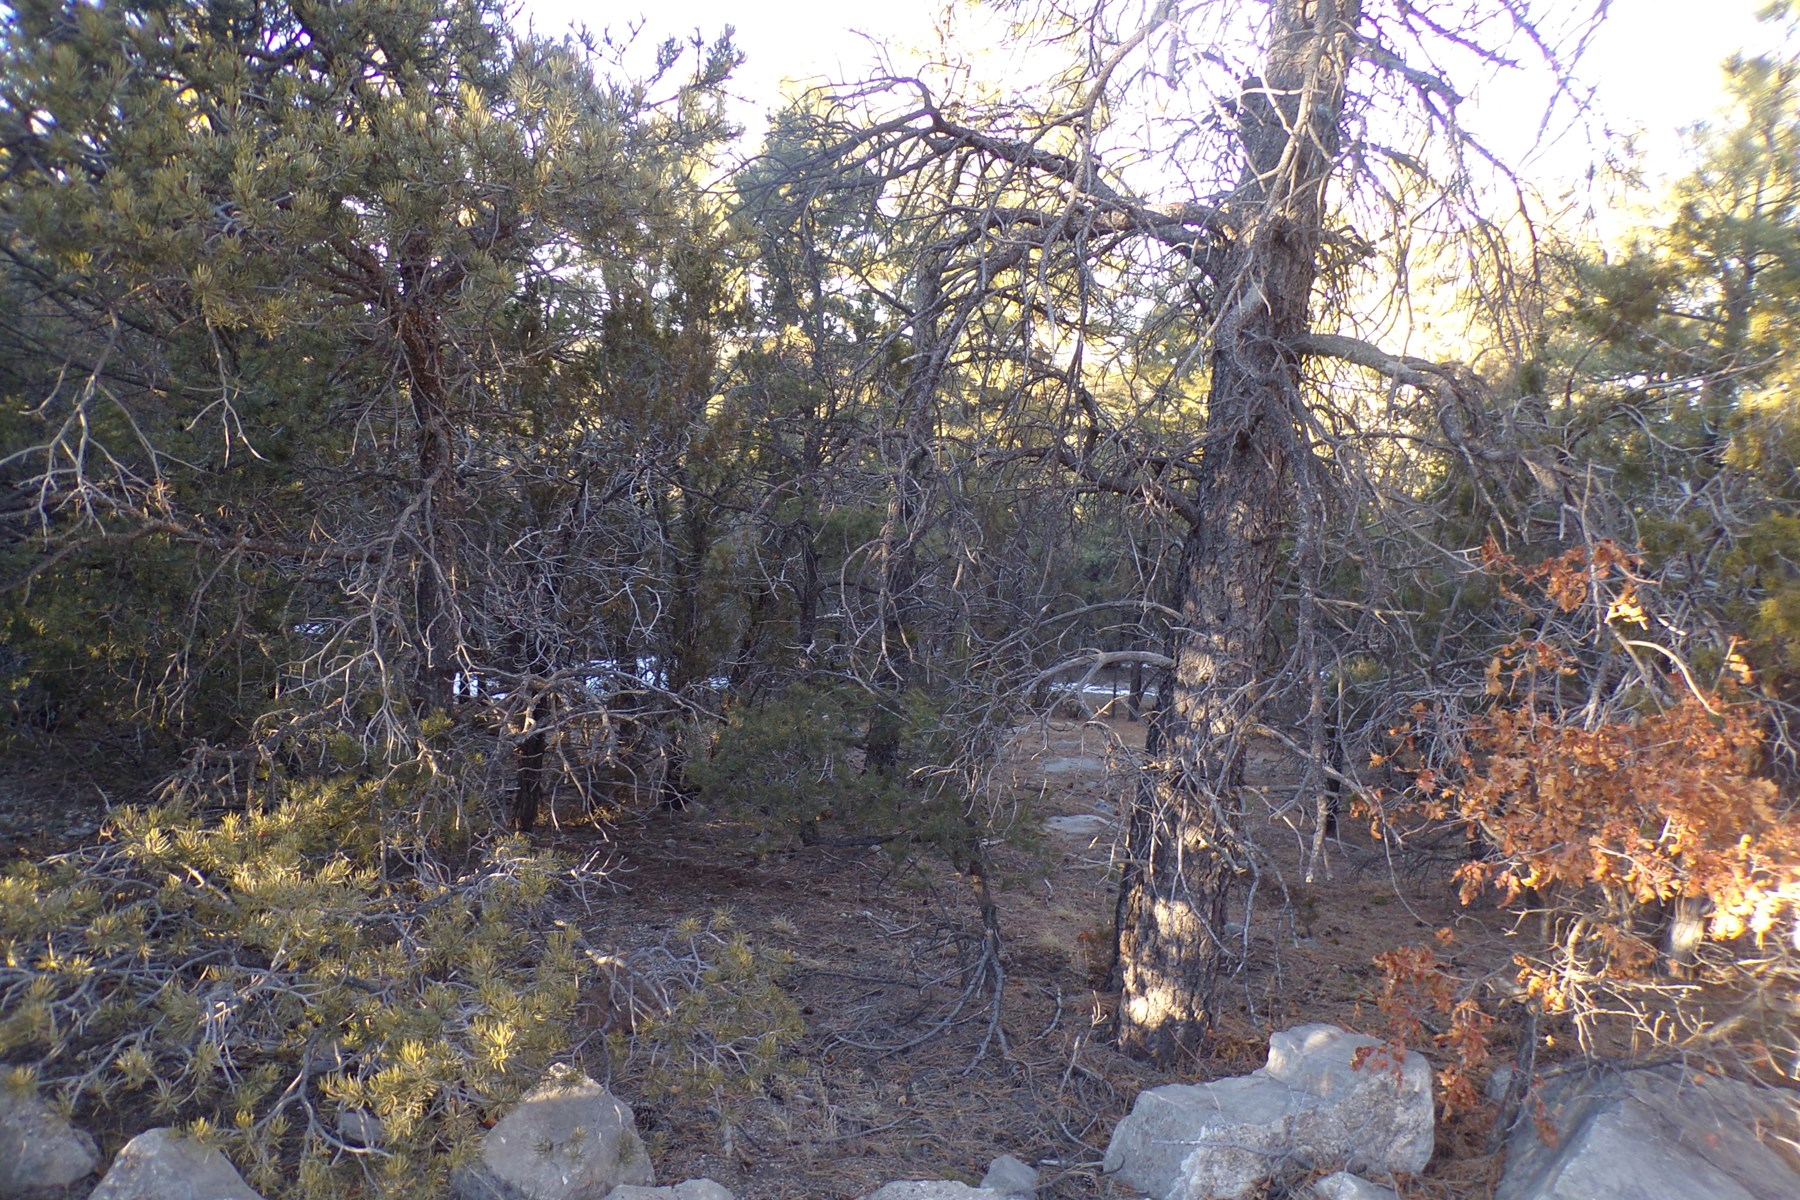 Edgewood, NM Residential 2.73 Acre Wooded Lot